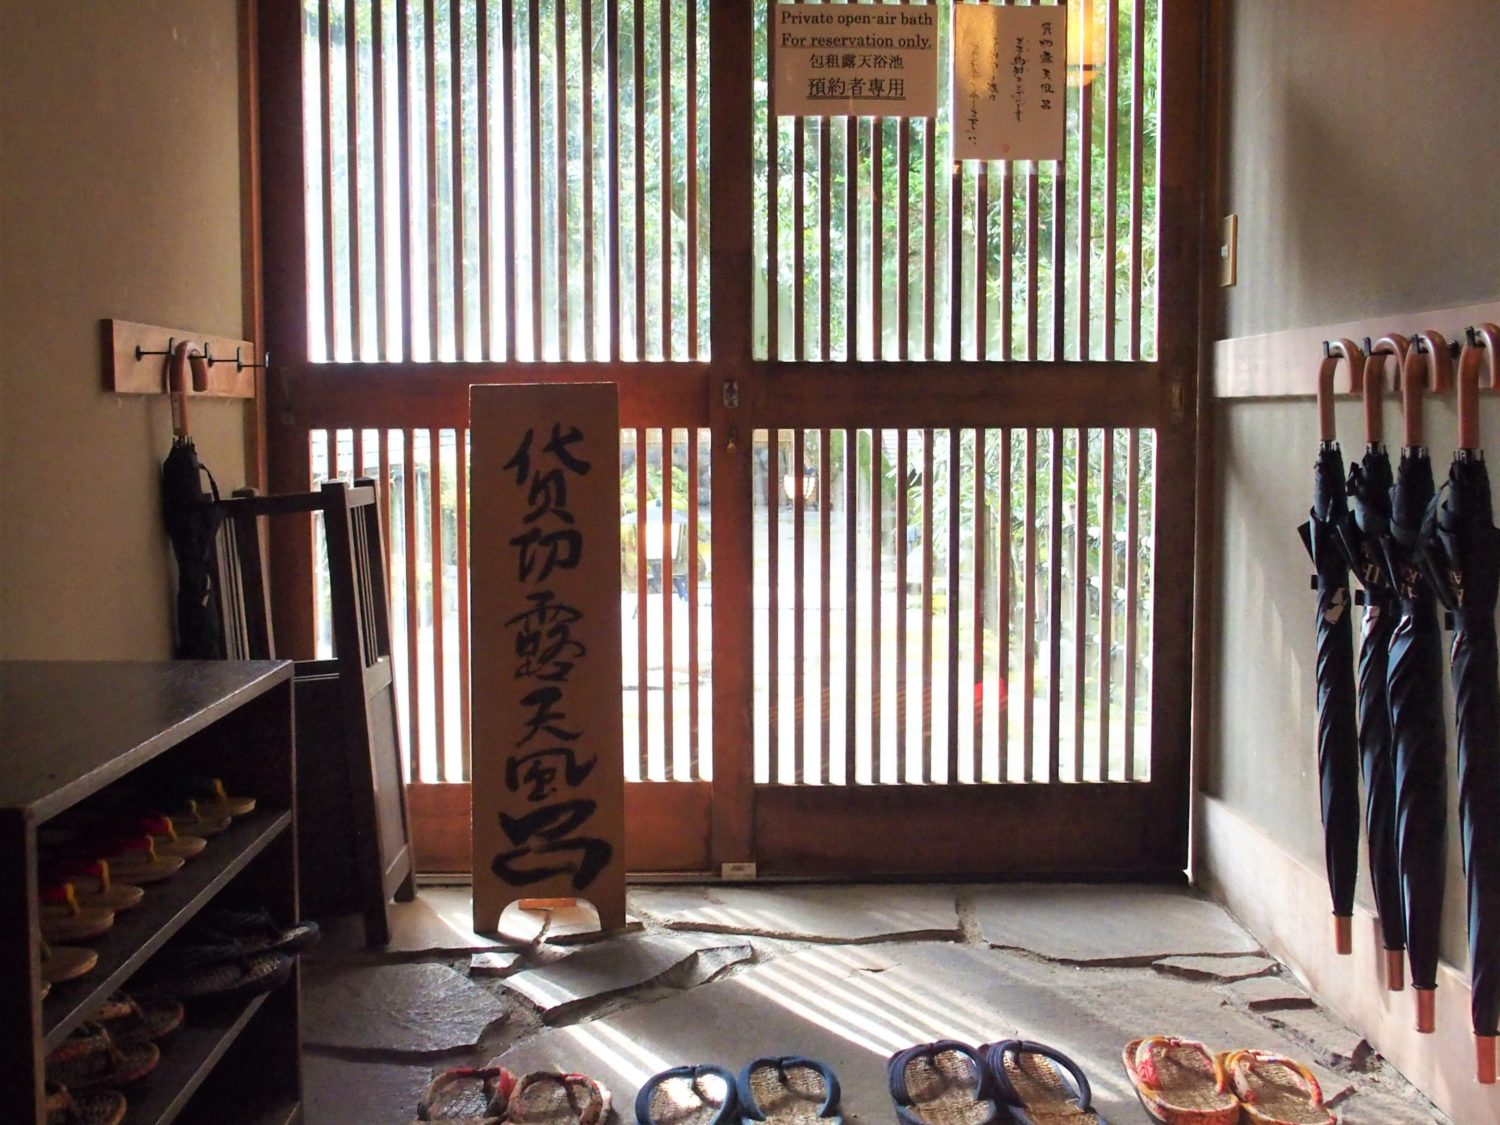 The entrance to a private onsen